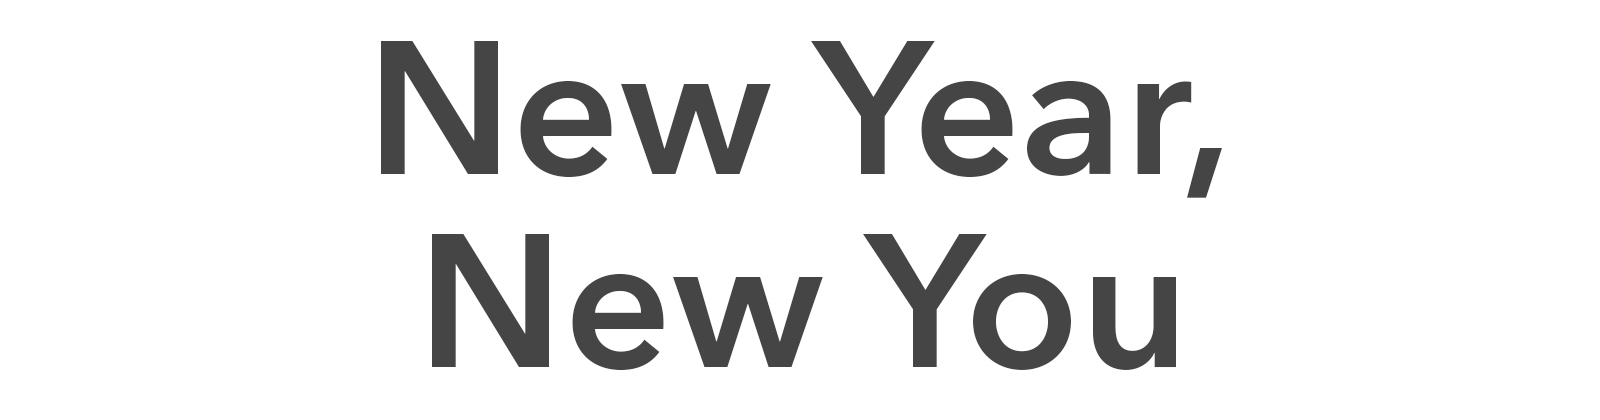 Blog New Year New You